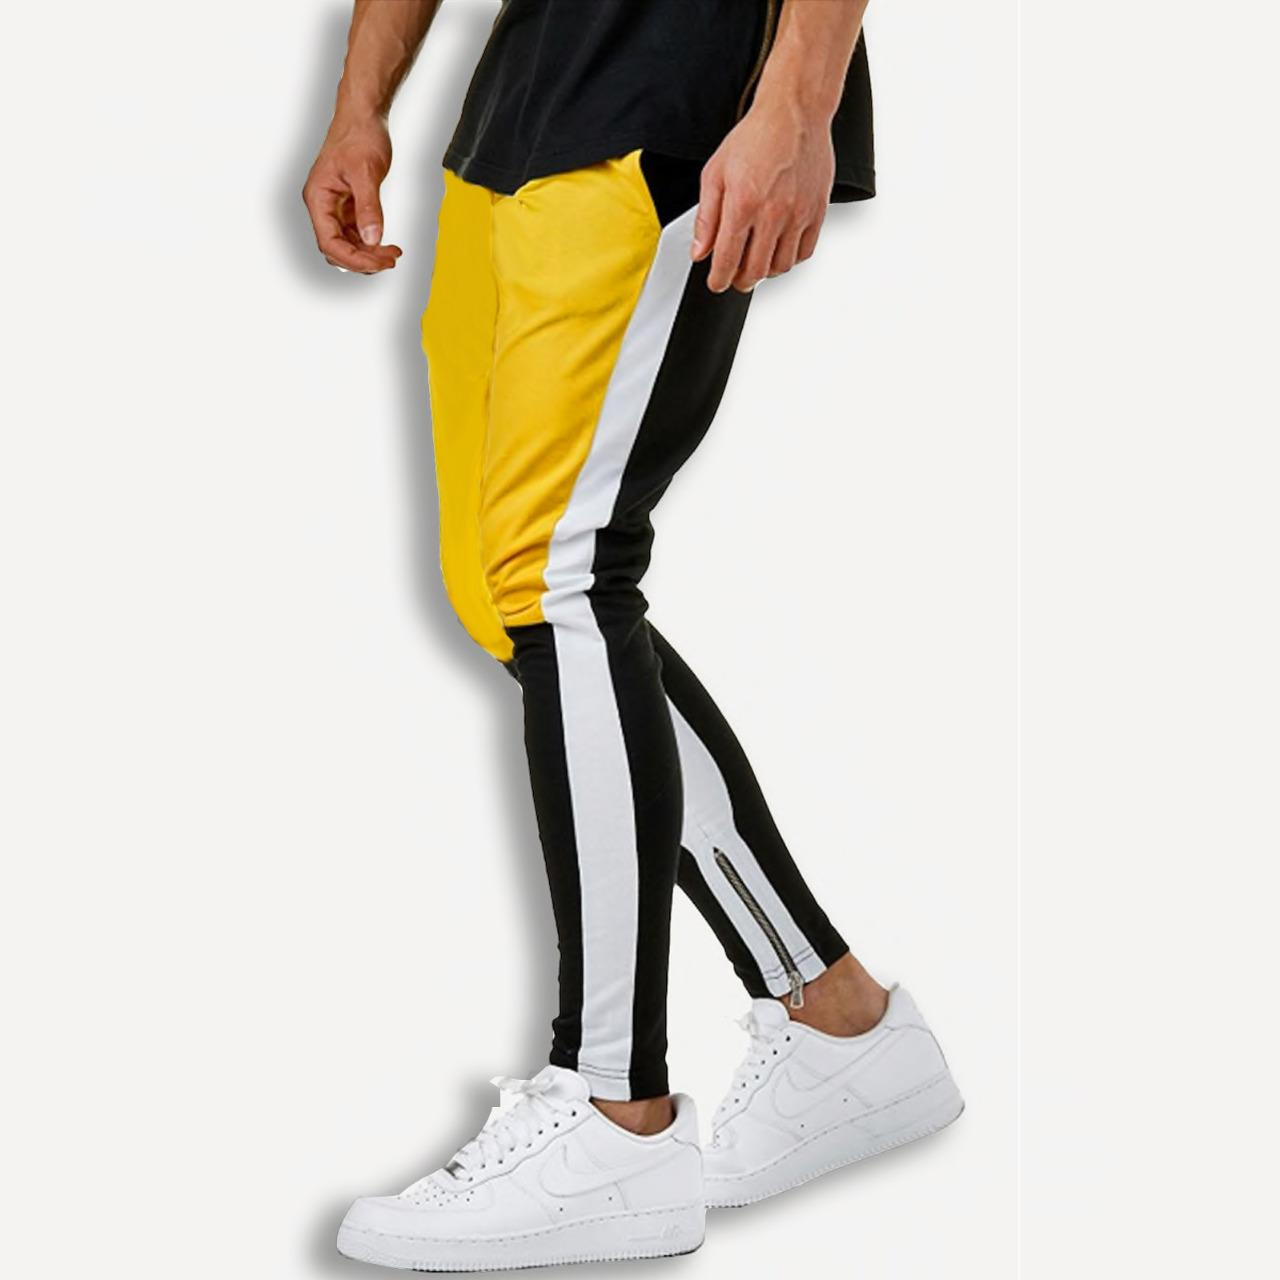 Jfashion Celana Jogger Training Pria dewasa Variasi Seleting kantong - Atlanta | Lazada Indonesia